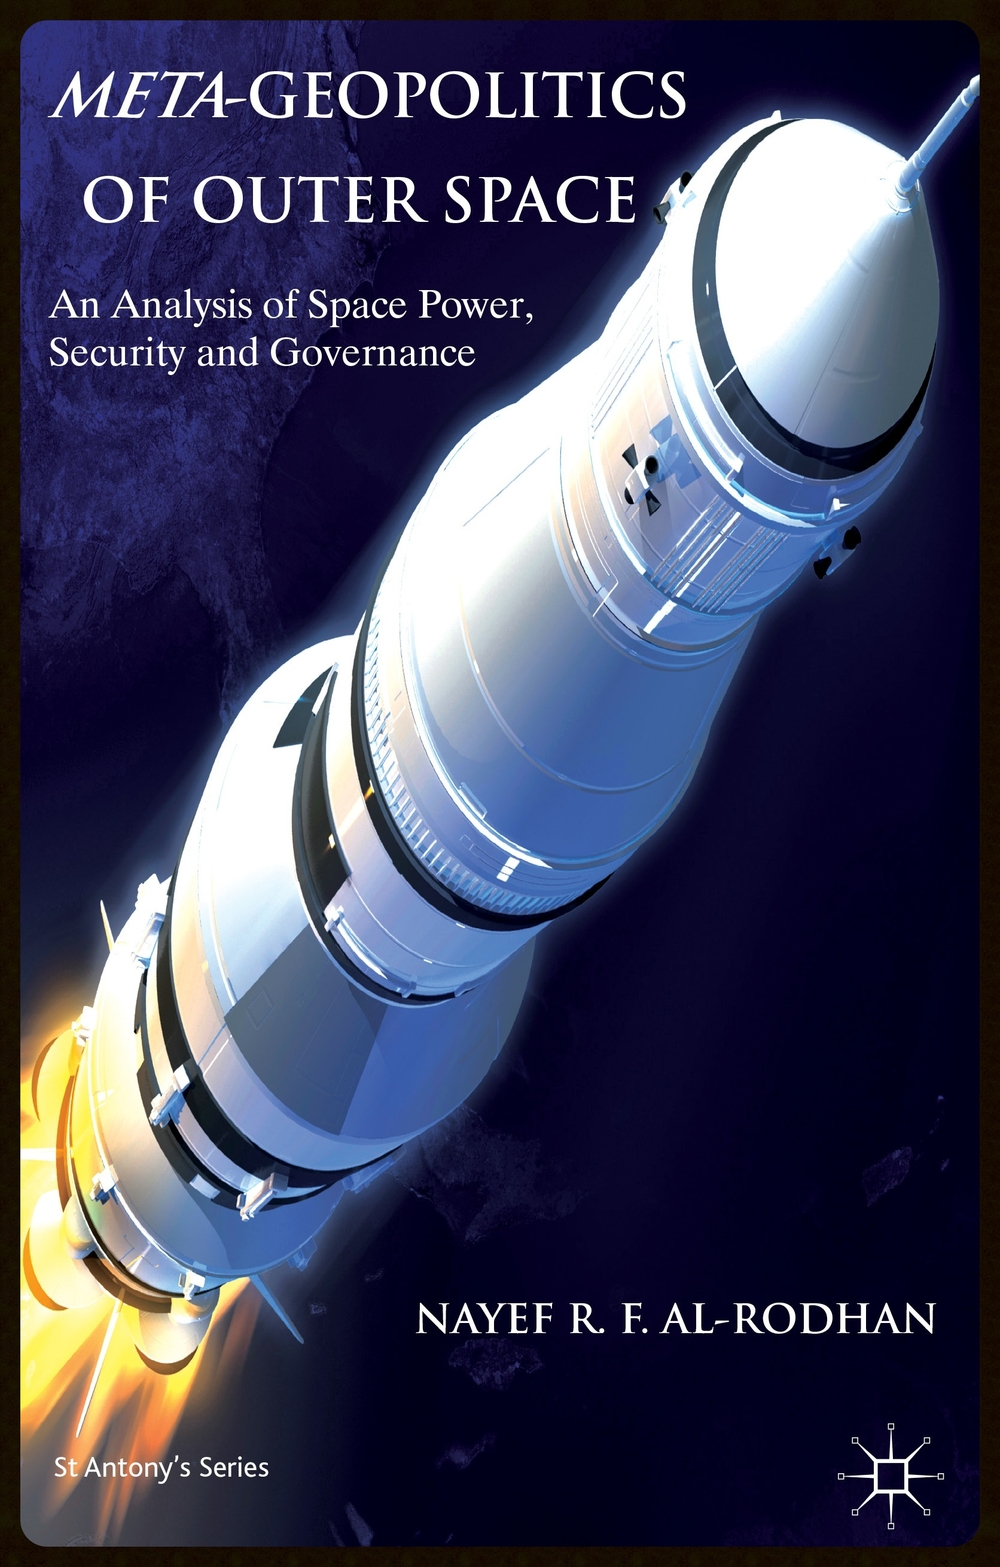 META-GEOPOLITICS OF OUTER SPACE:An Analysis of Space Power, Security and Governance One of the most distinctive features of Meta-geopolitics is its all-encompassing analysis of space power, security and geopolitical actors. Read more.